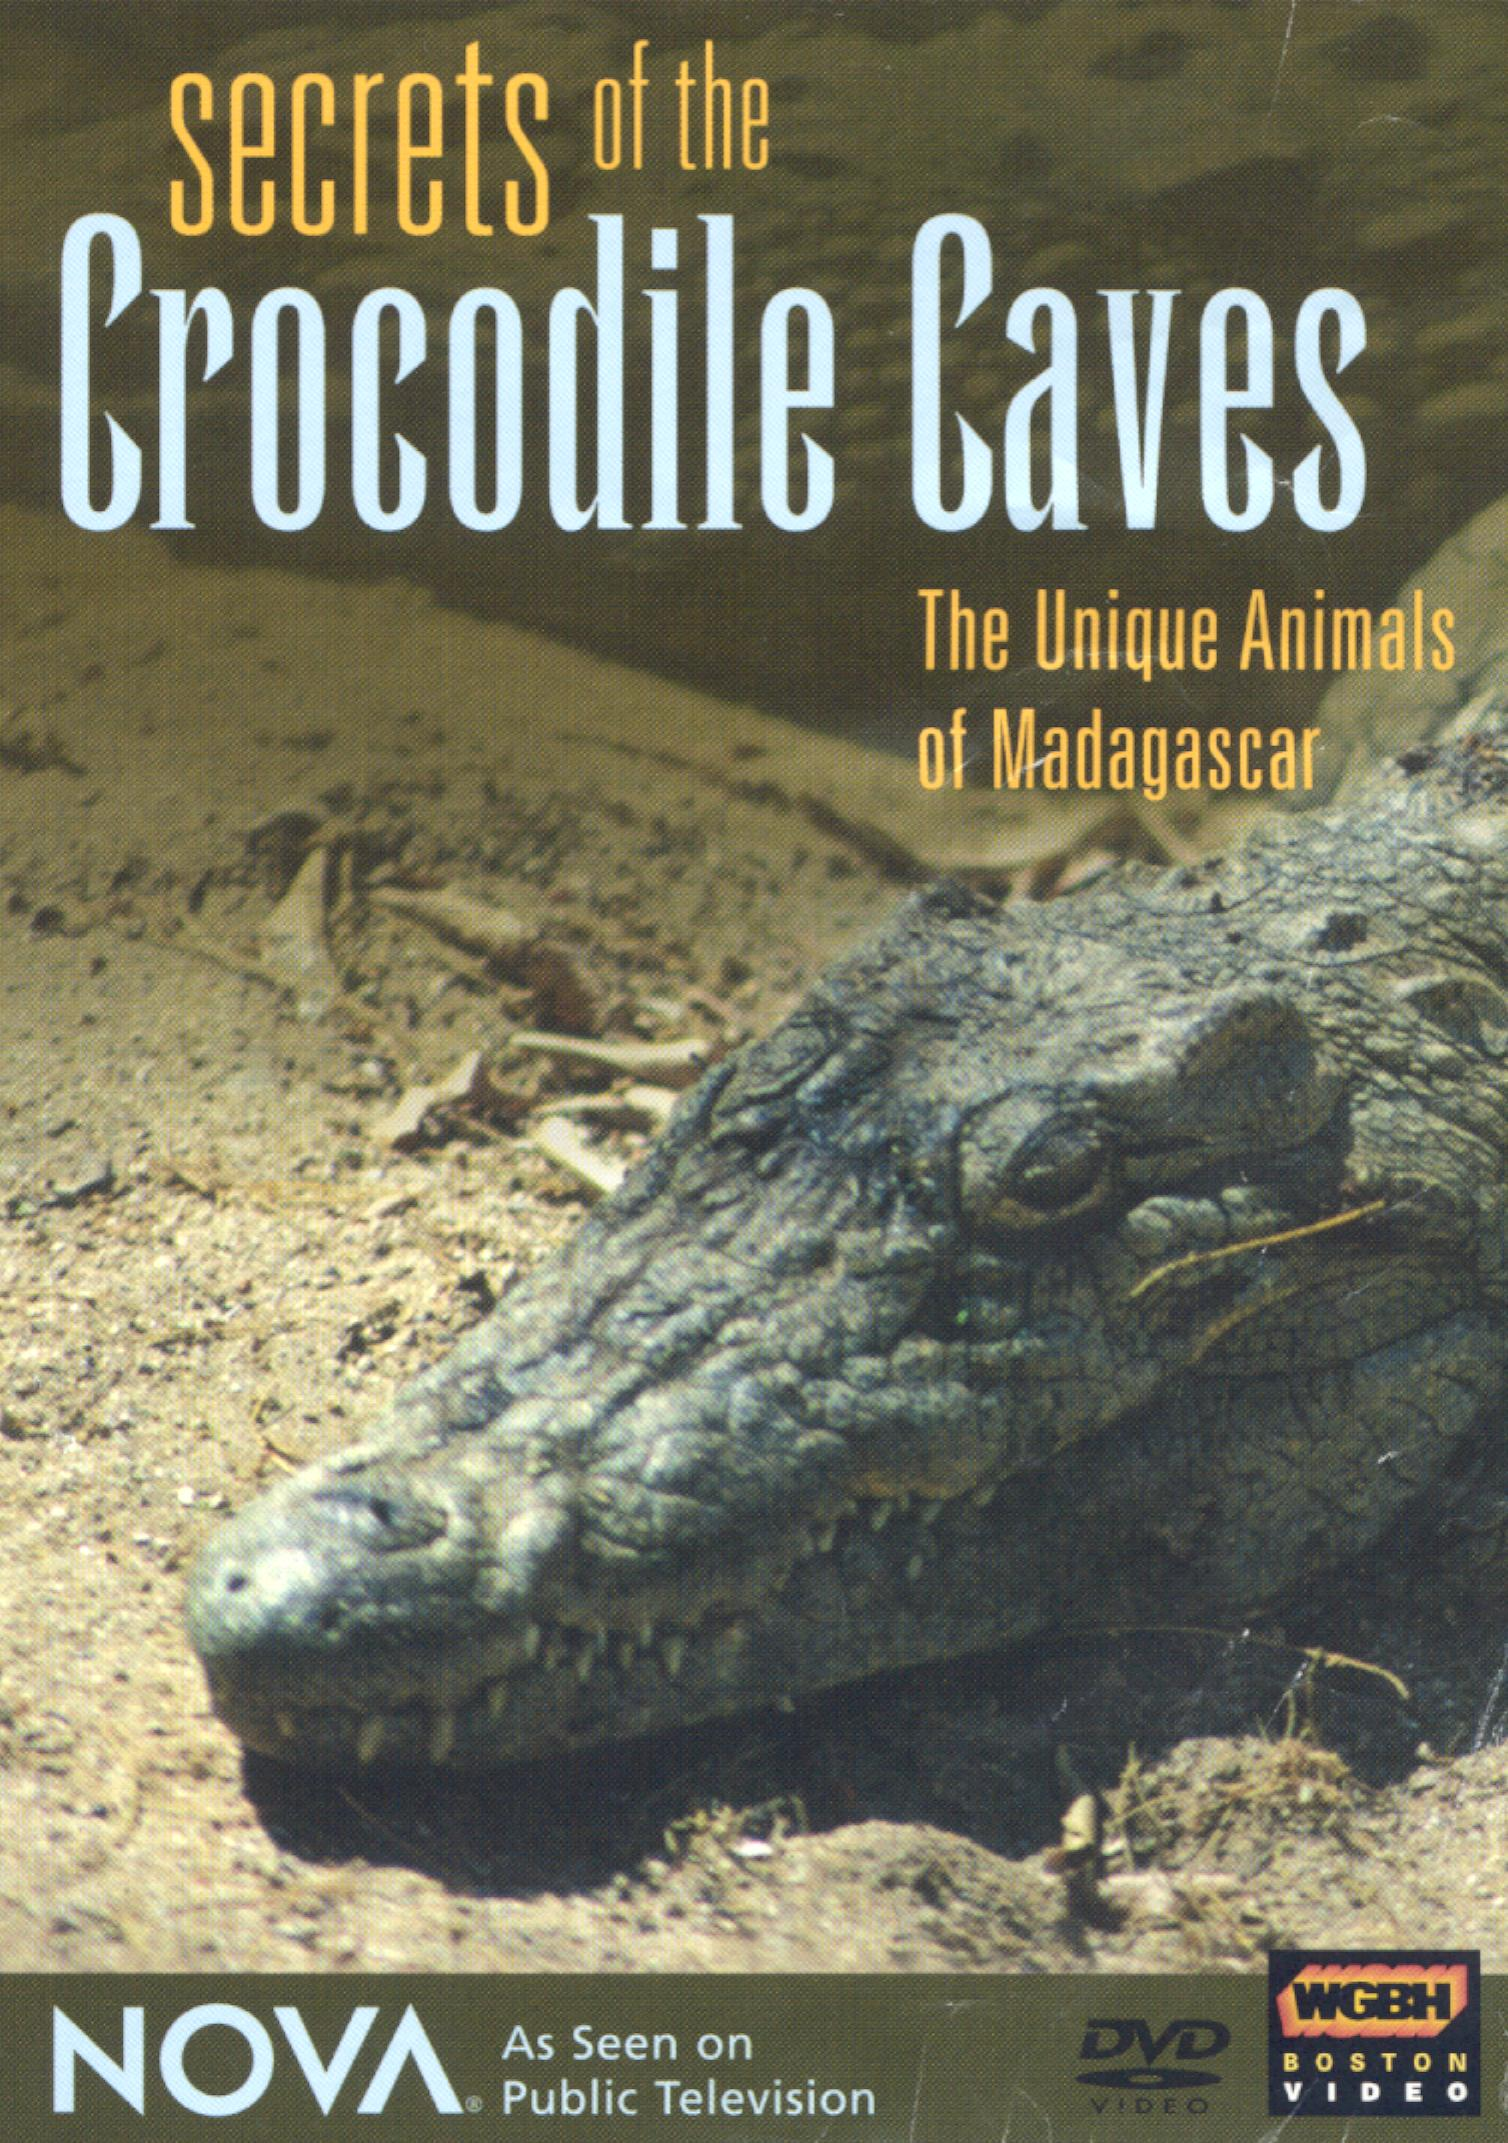 NOVA: Secrets of the Crocodile Caves - The Unique Animals of Madagascar